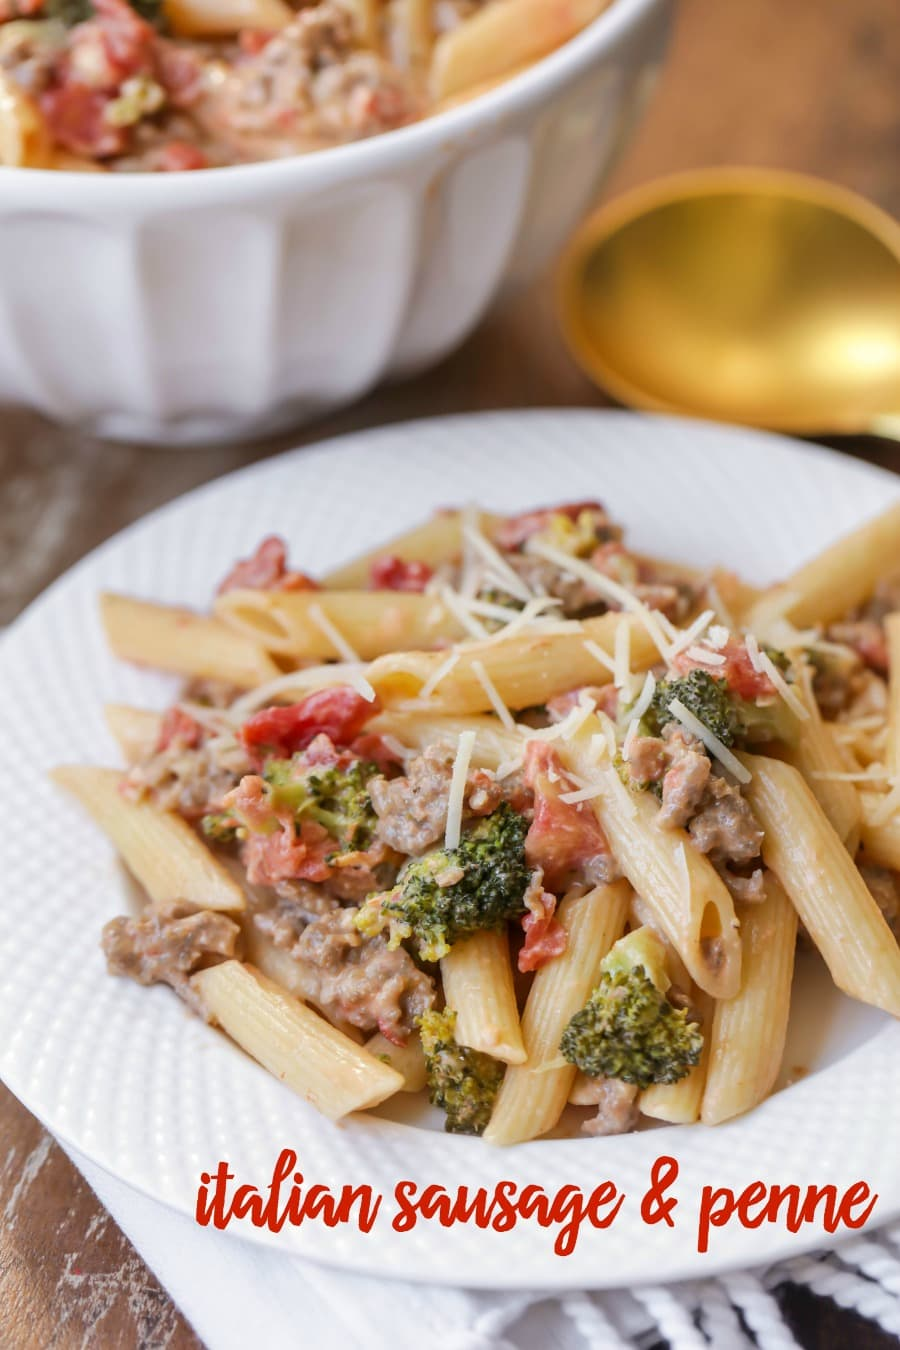 Italian Sausage and Penne - a delicious and flavorful pasta dish filled with broccoli, tomatoes, sausage, cheese and more making it a new favorite dinner recipe!